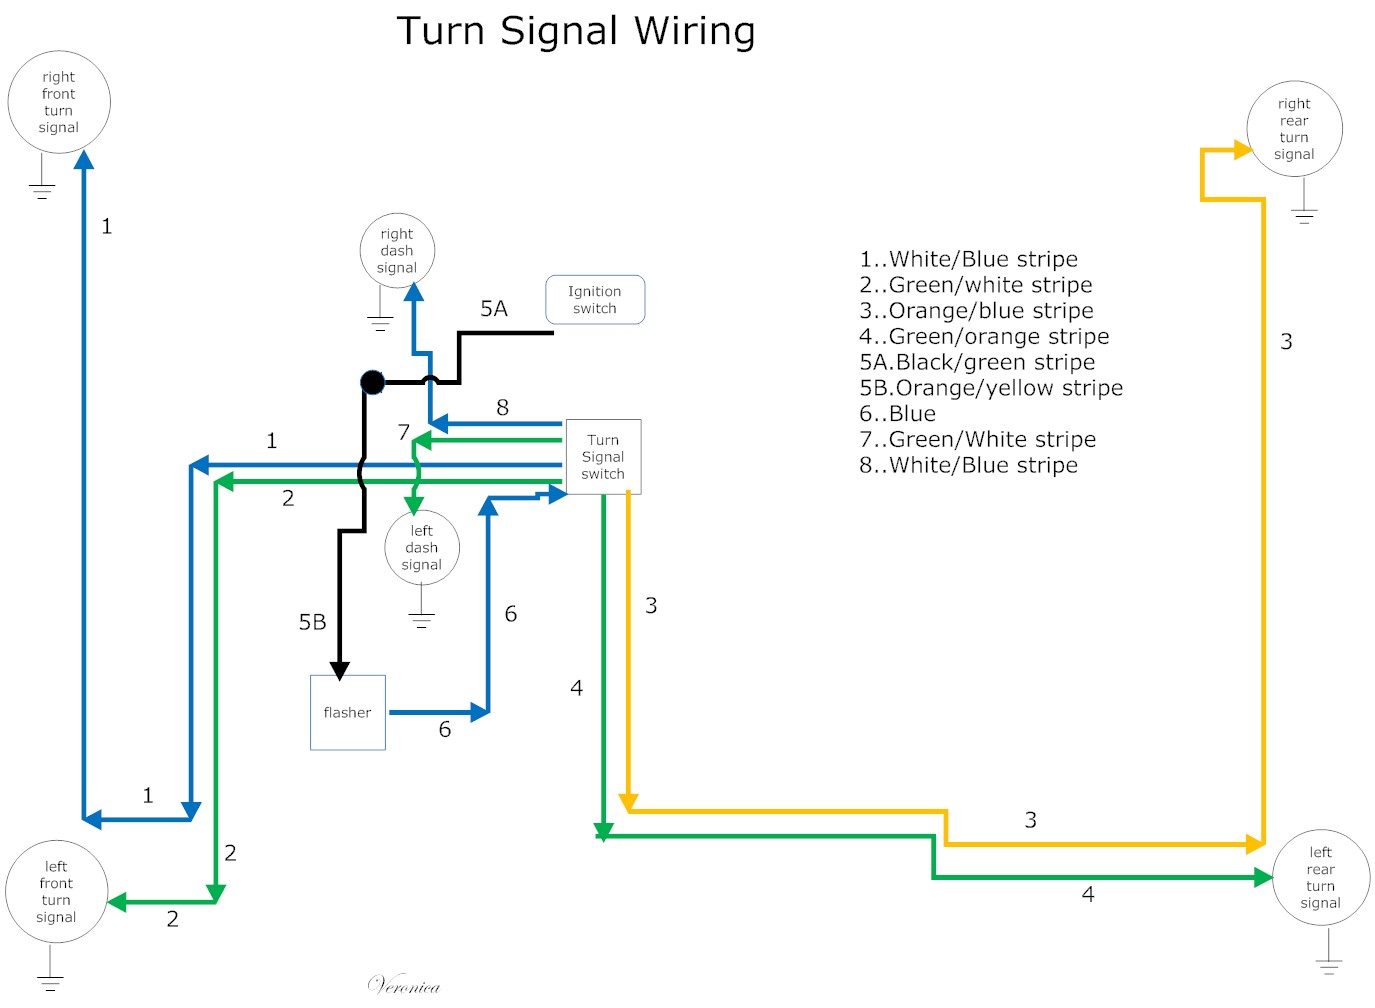 Turn+signal+Wiring the care and feeding of ponies 1965 mustang wiring diagrams 1966 mustang wiring diagrams electrical schematics at nearapp.co